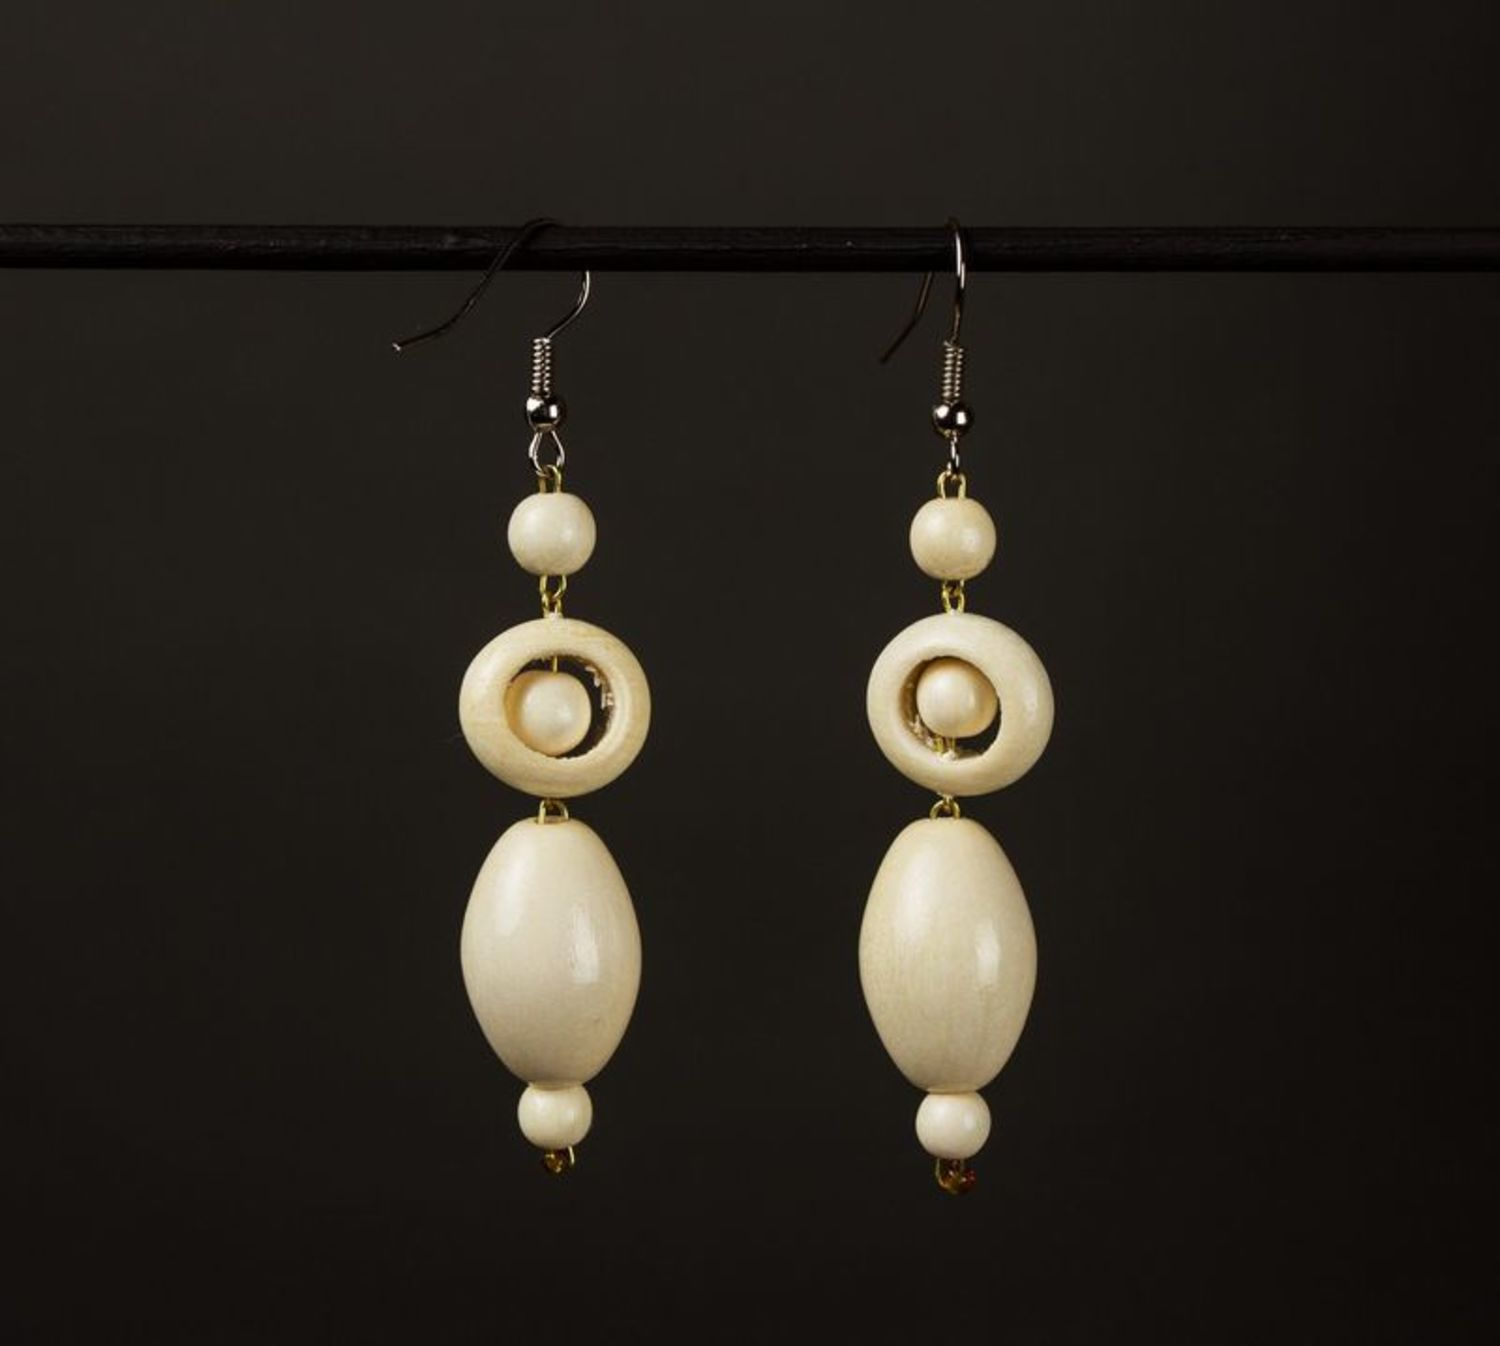 Long wooden earrings photo 1